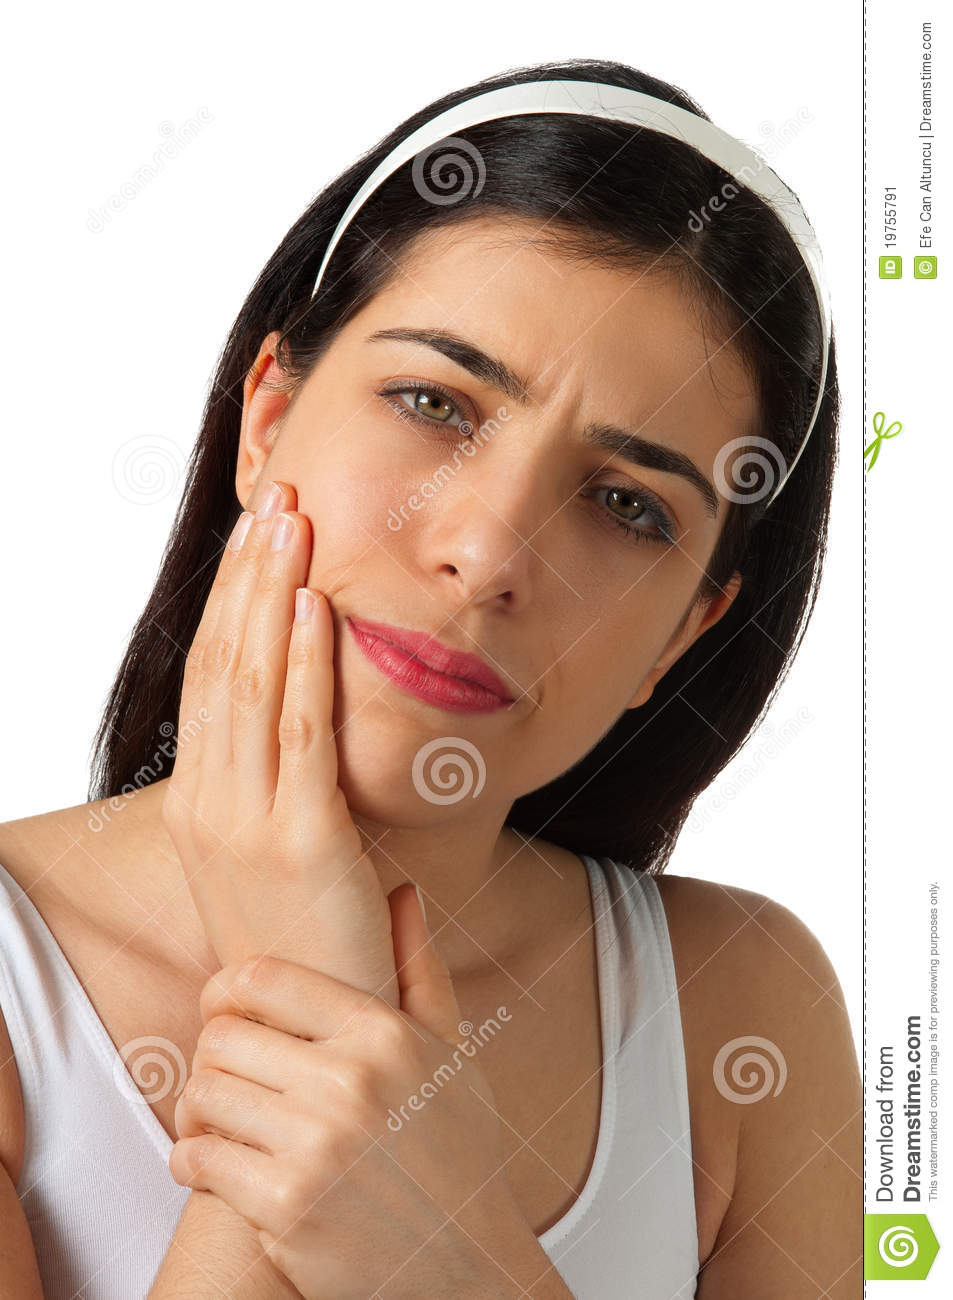 Isolated Toothache